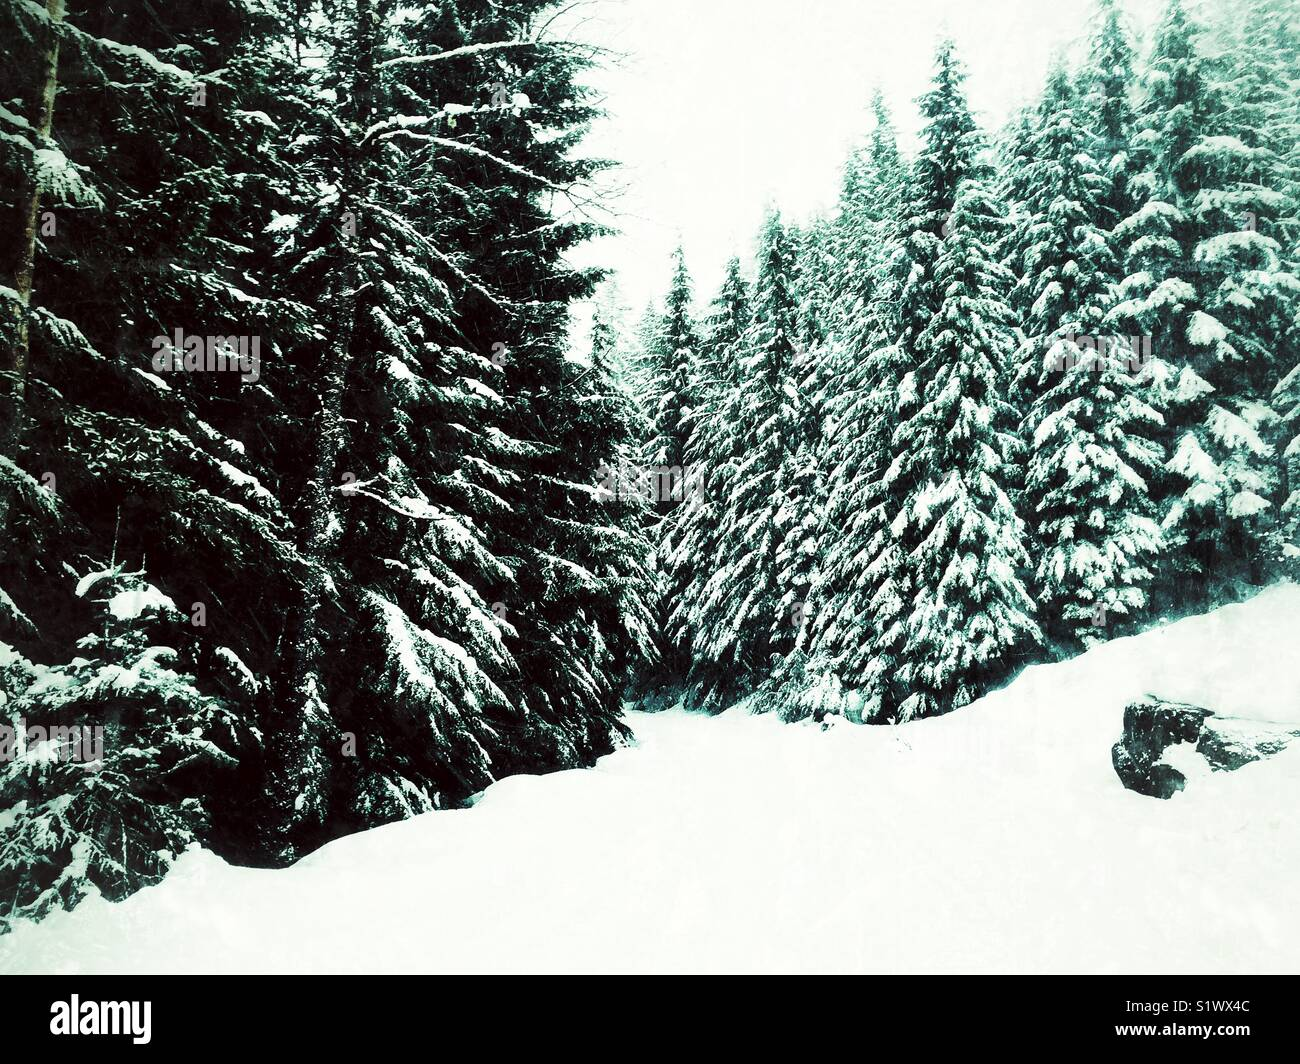 Snow covered conifers in winter wonderland near Snoqualmie pass, half an our from rainy Seattle - Stock Image